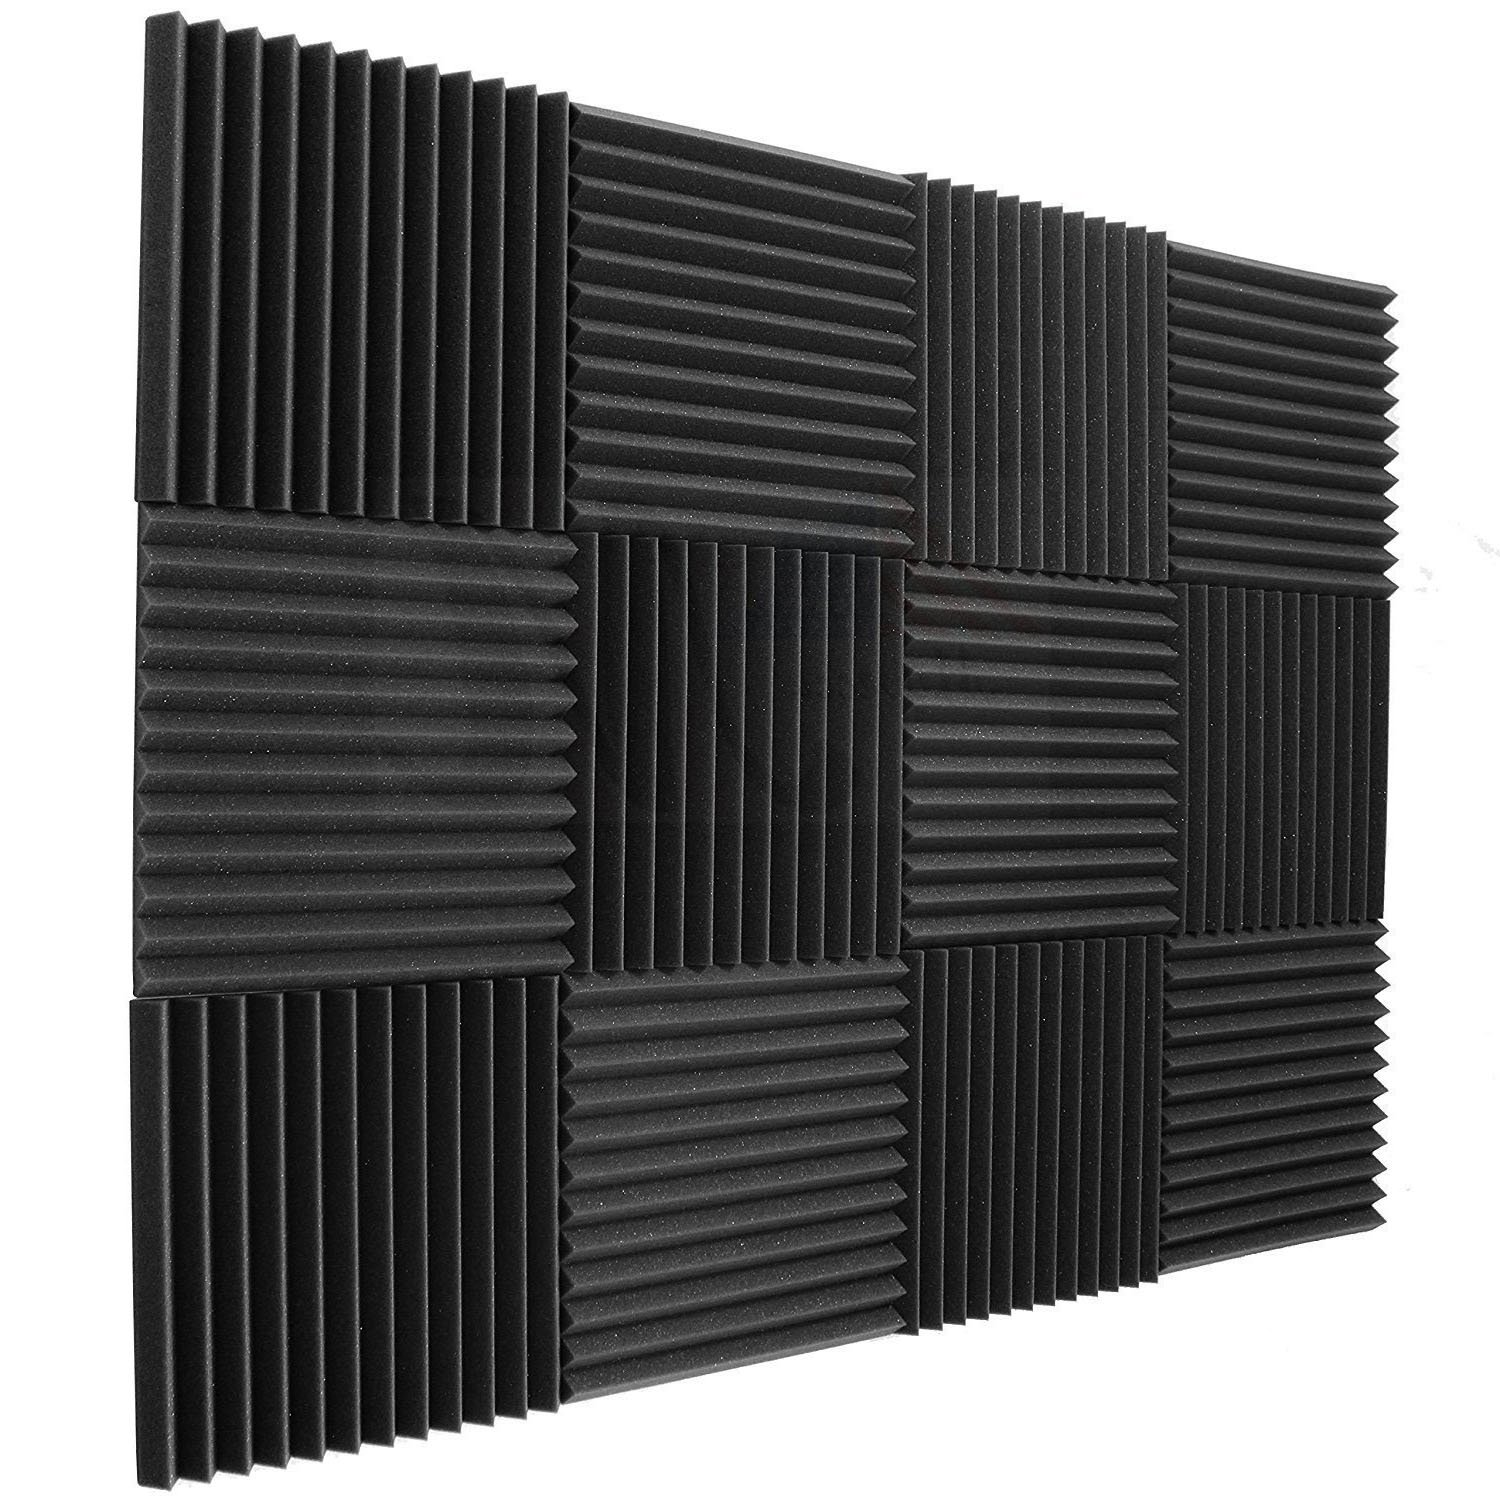 12 pack Acoustic Panels - Acoustic Foam Panels - Sound Proof Studio foam Sound Dampening noise Sound Deadening foam Sound Panels wedges Soundproof Sound Insulation Absorbing 1''x12''x12